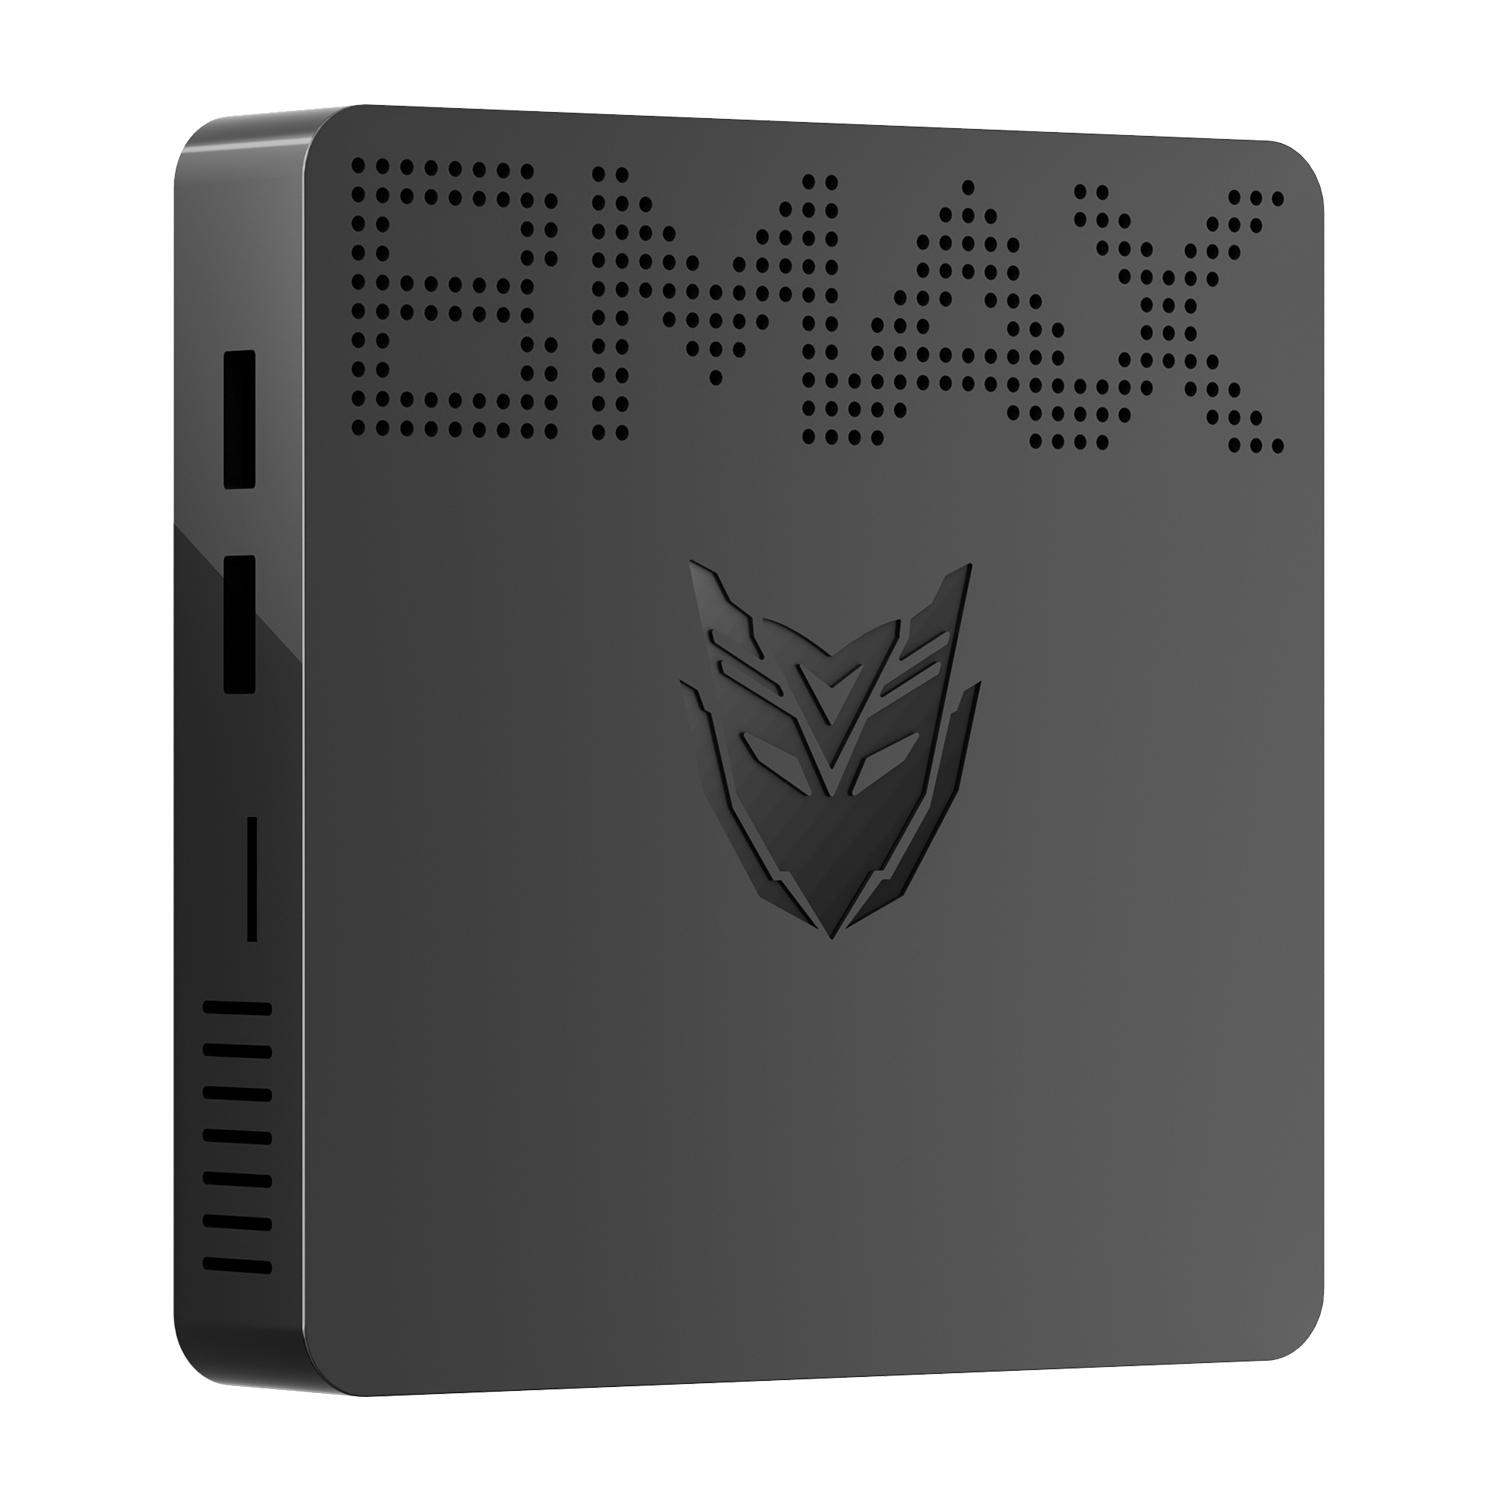 Bmax B1 Mini PC Intel Celeron N3060 Dual Core 1.6GHz up to 2.4GHz 4GB LPDDR3 64GB eMMC Intel HD Graphics Wifi bluetooth M.2 SATA 12V/2A HD VGA